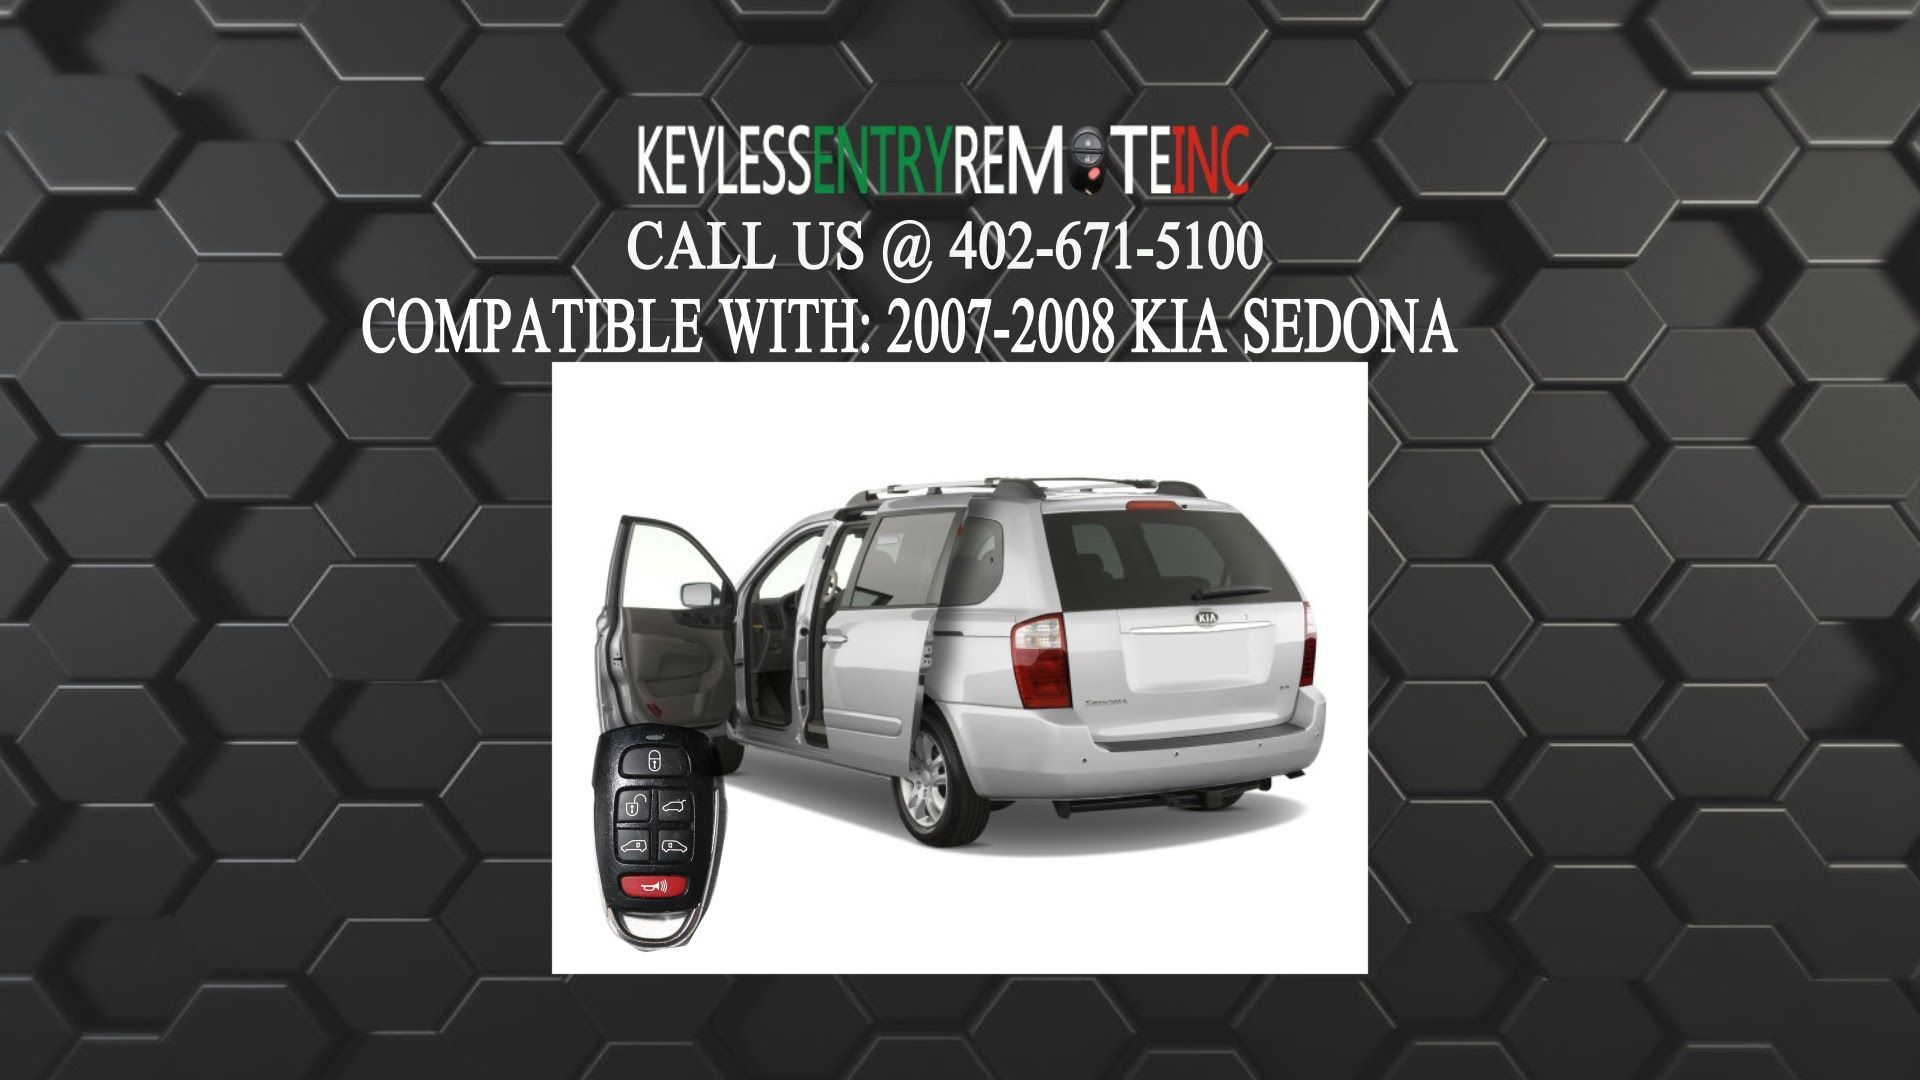 How To Replace Kia Sedona Key Fob Battery 2006 2014 Kia Sedona Kia Jump A Car Battery